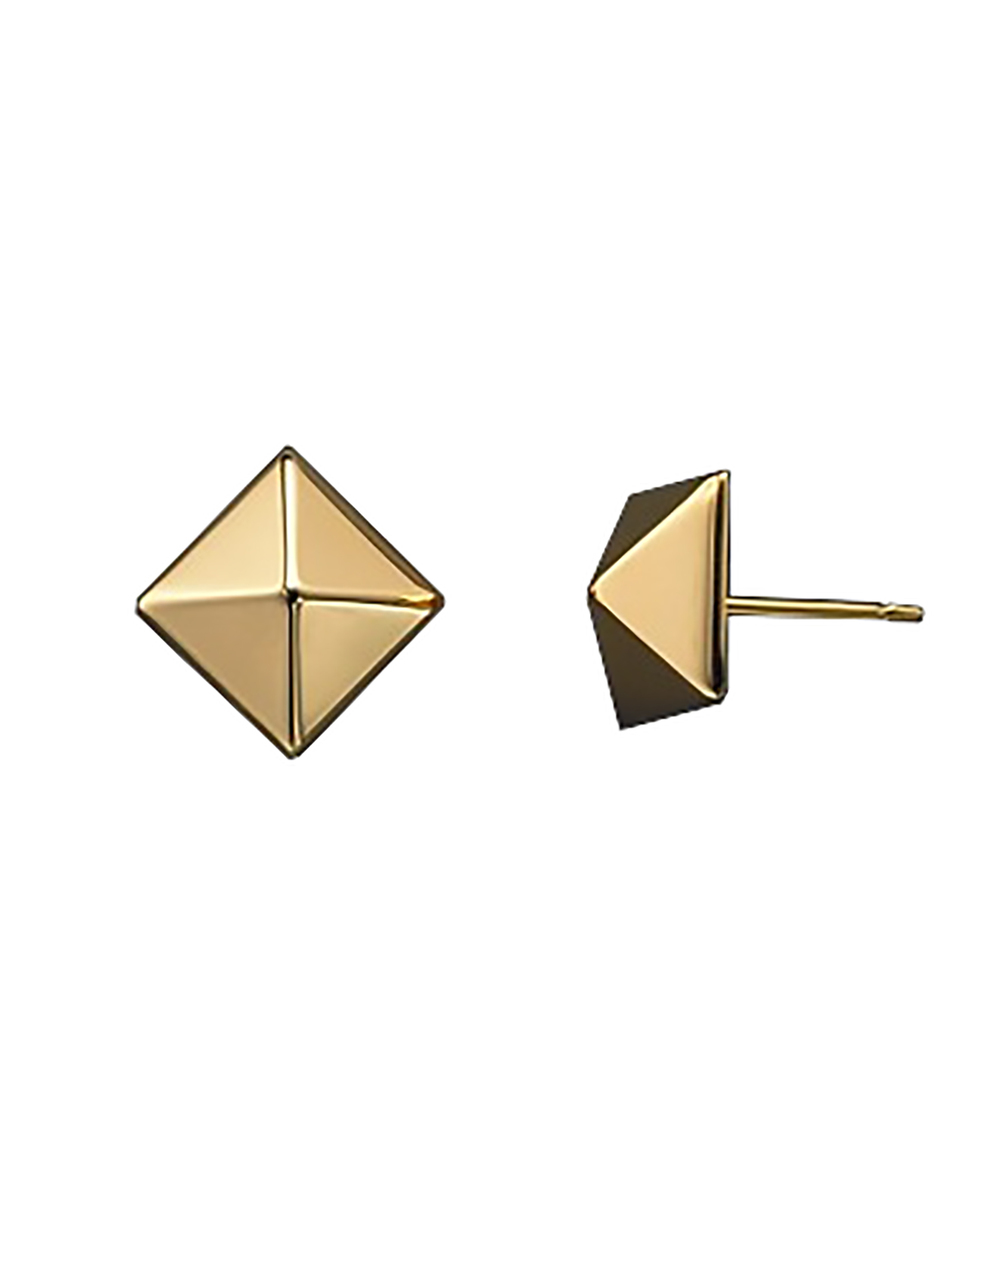 bloomingdales 14k yellow gold medium pyramid post earrings studs 1500.jpg